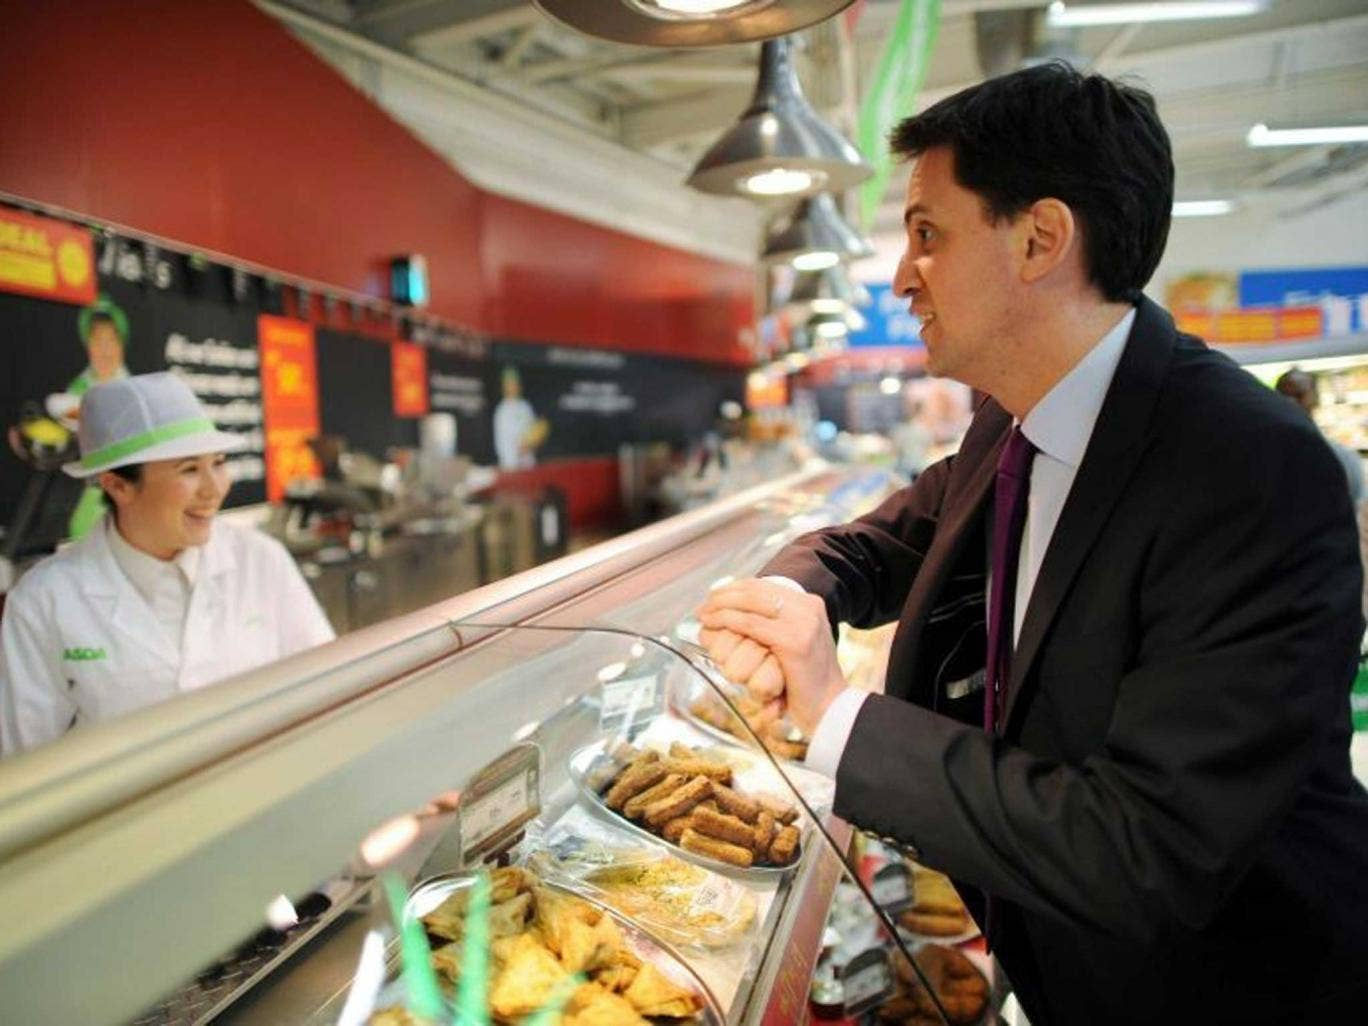 Miliband talks to a member of staff at an Asda supermarket in Harlow: the Labour leader recently admitted he didn't know the price of his own weekly shop